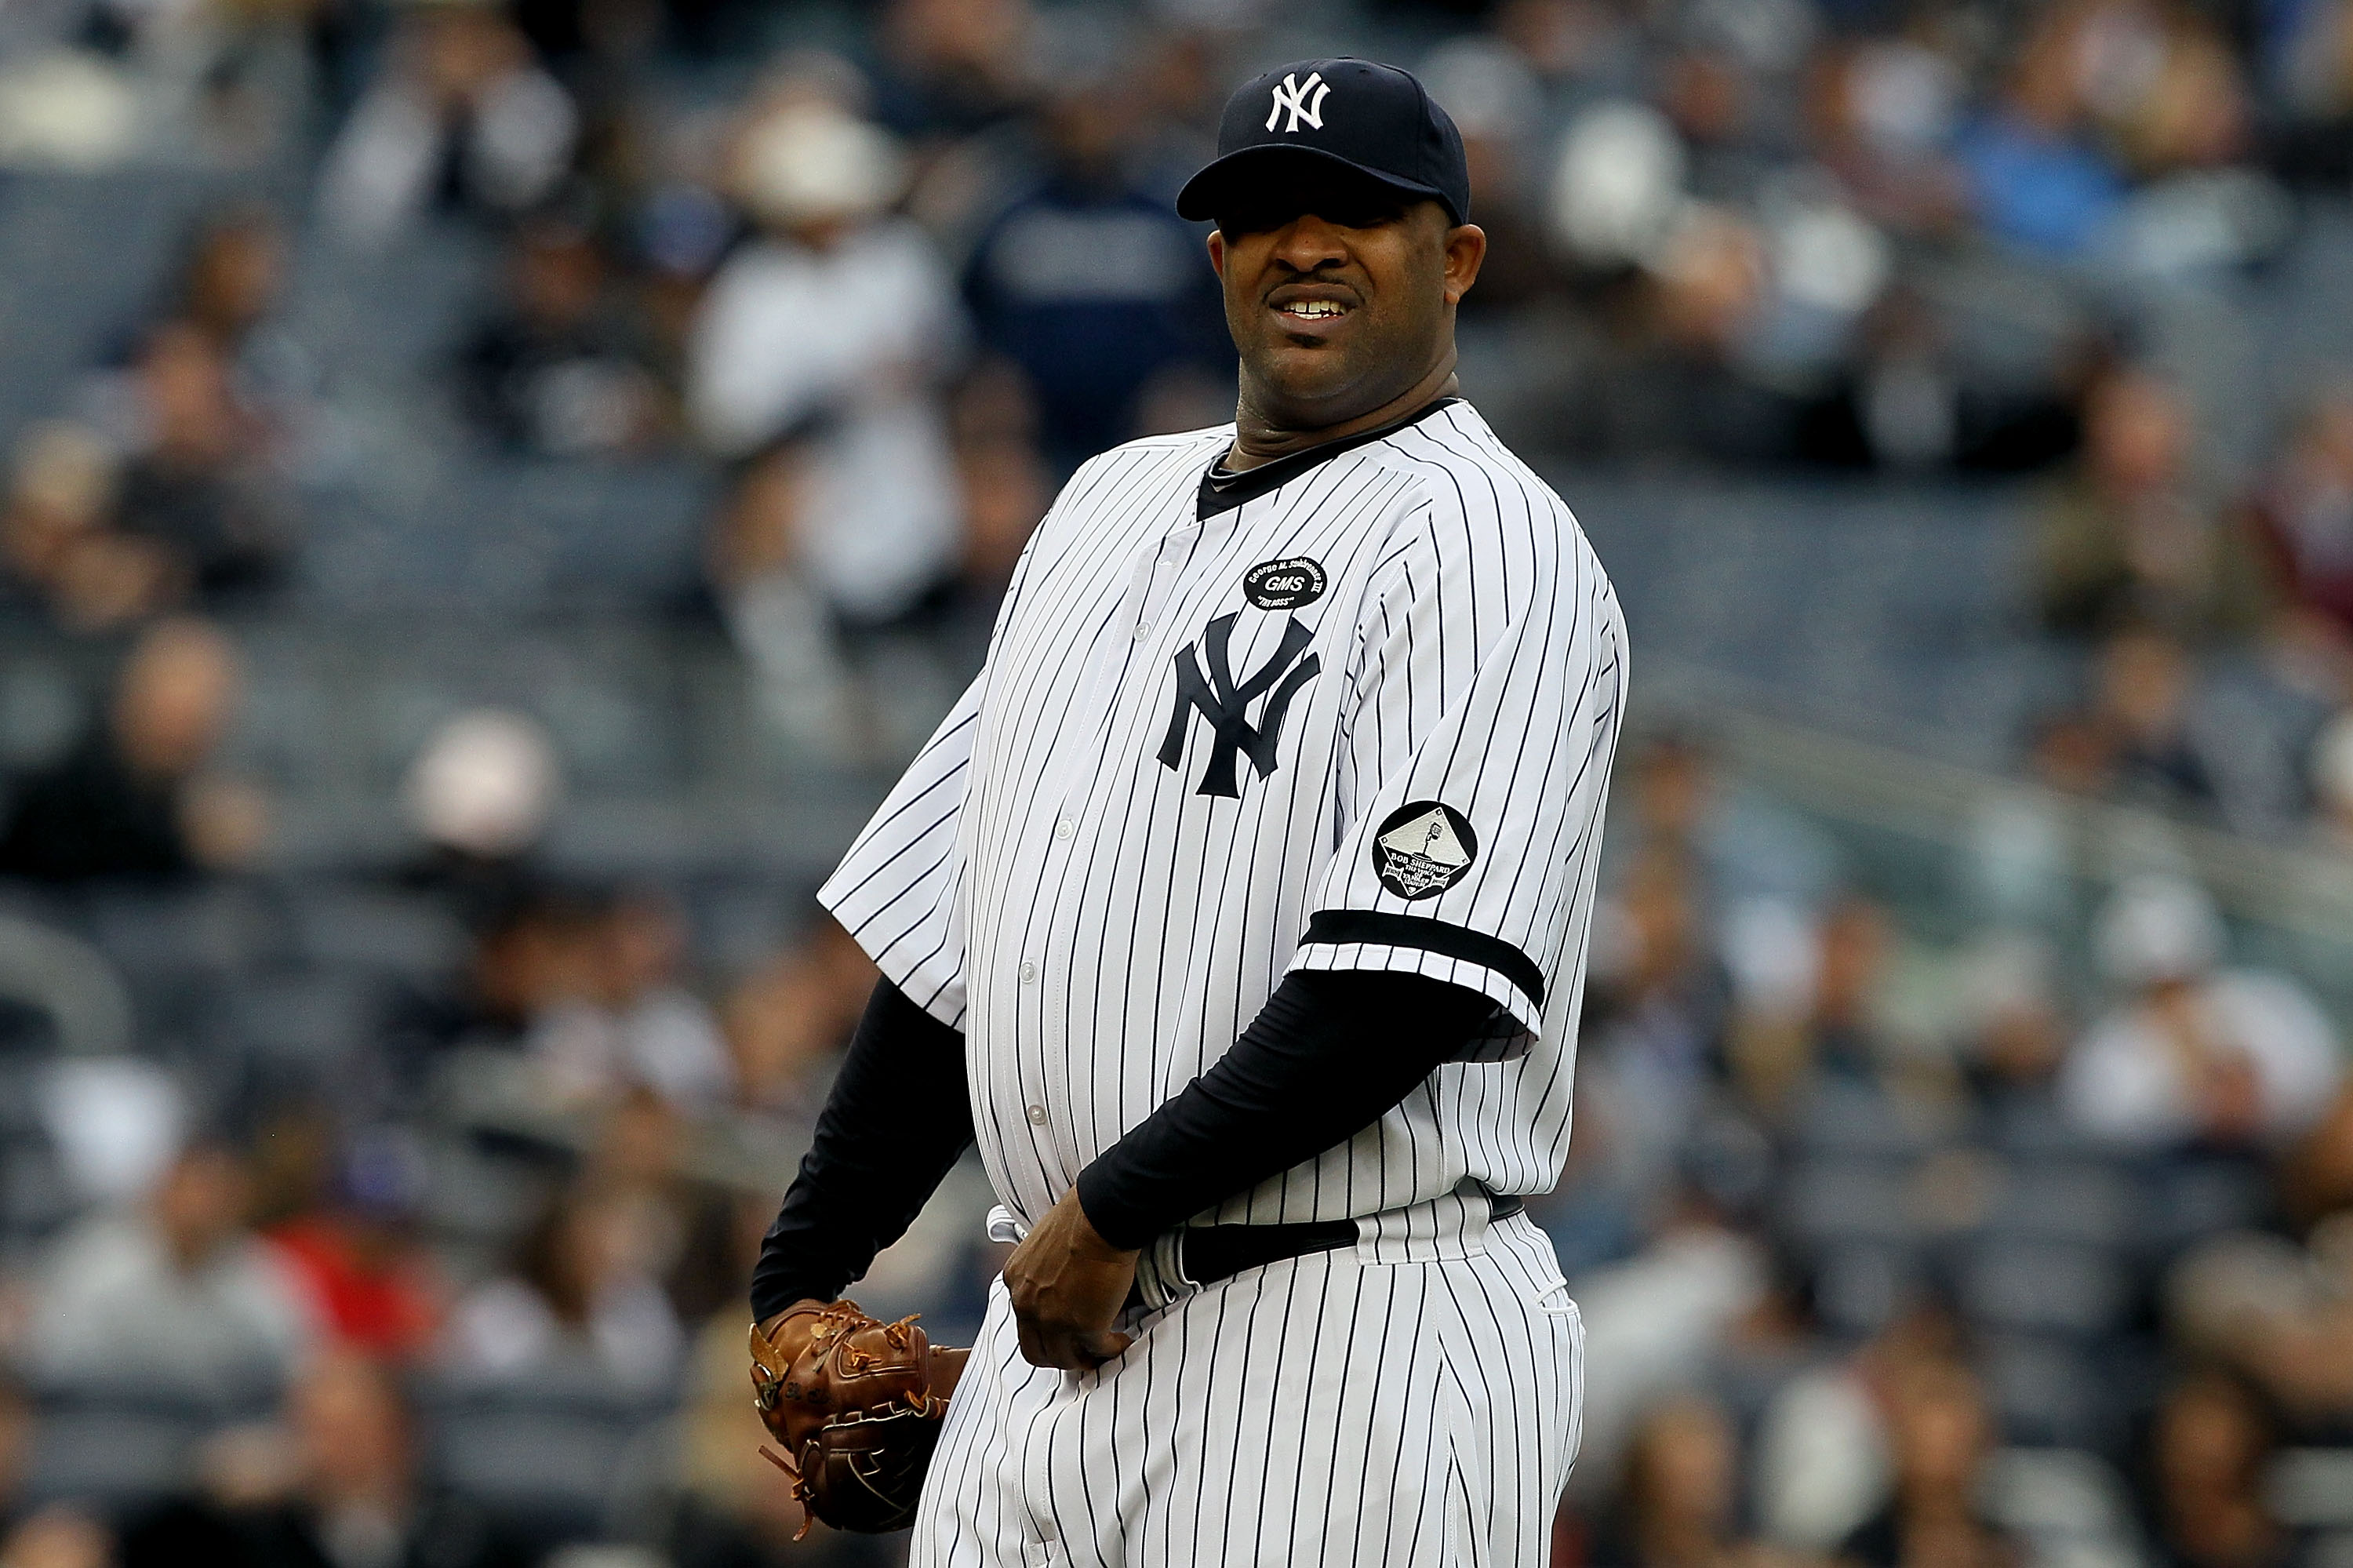 NEW YORK - OCTOBER 20:  CC Sabathia #52 of the New York Yankees reacts against the Texas Rangers in Game Five of the ALCS during the 2010 MLB Playoffs at Yankee Stadium on October 20, 2010 in the Bronx borough of New York City.  (Photo by Jim McIsaac/Gett